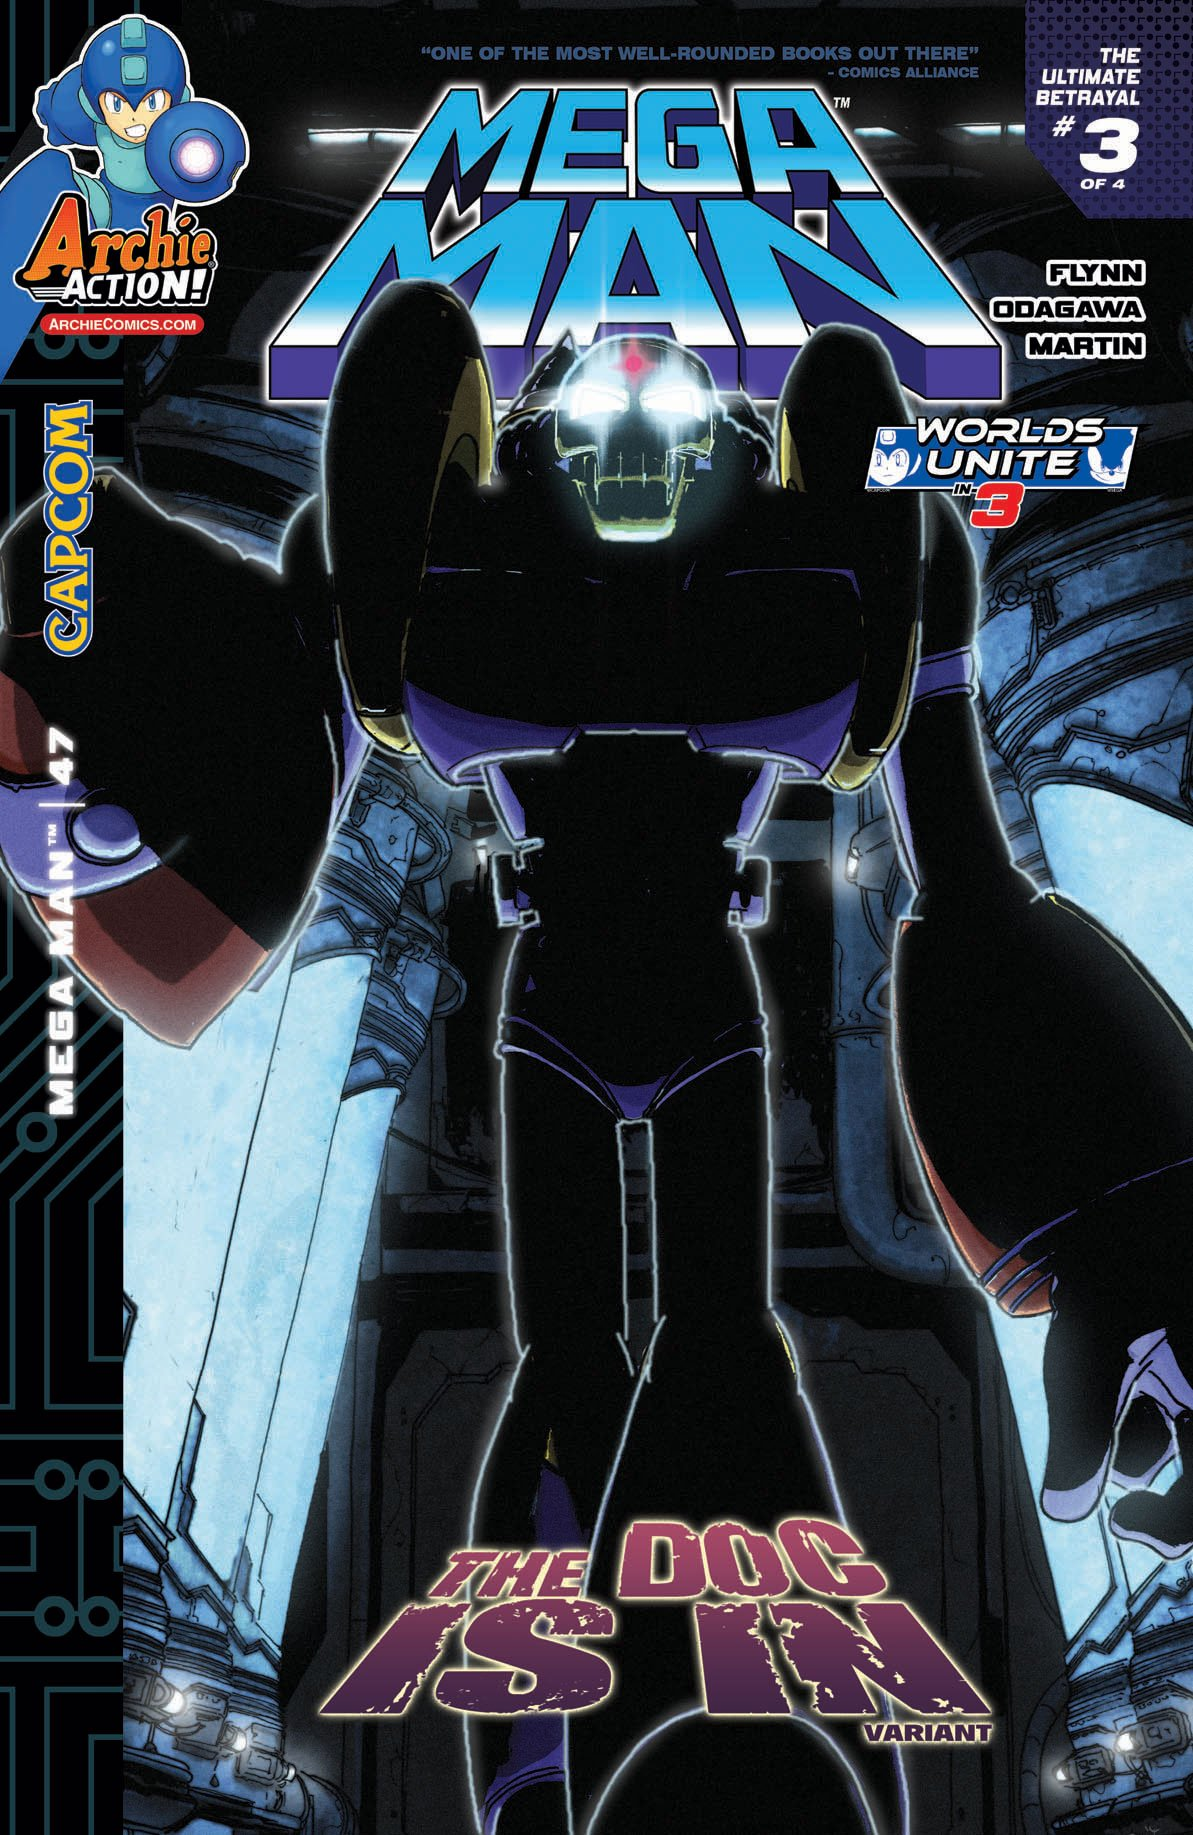 Mega Man 047 (May 2015) (variant)